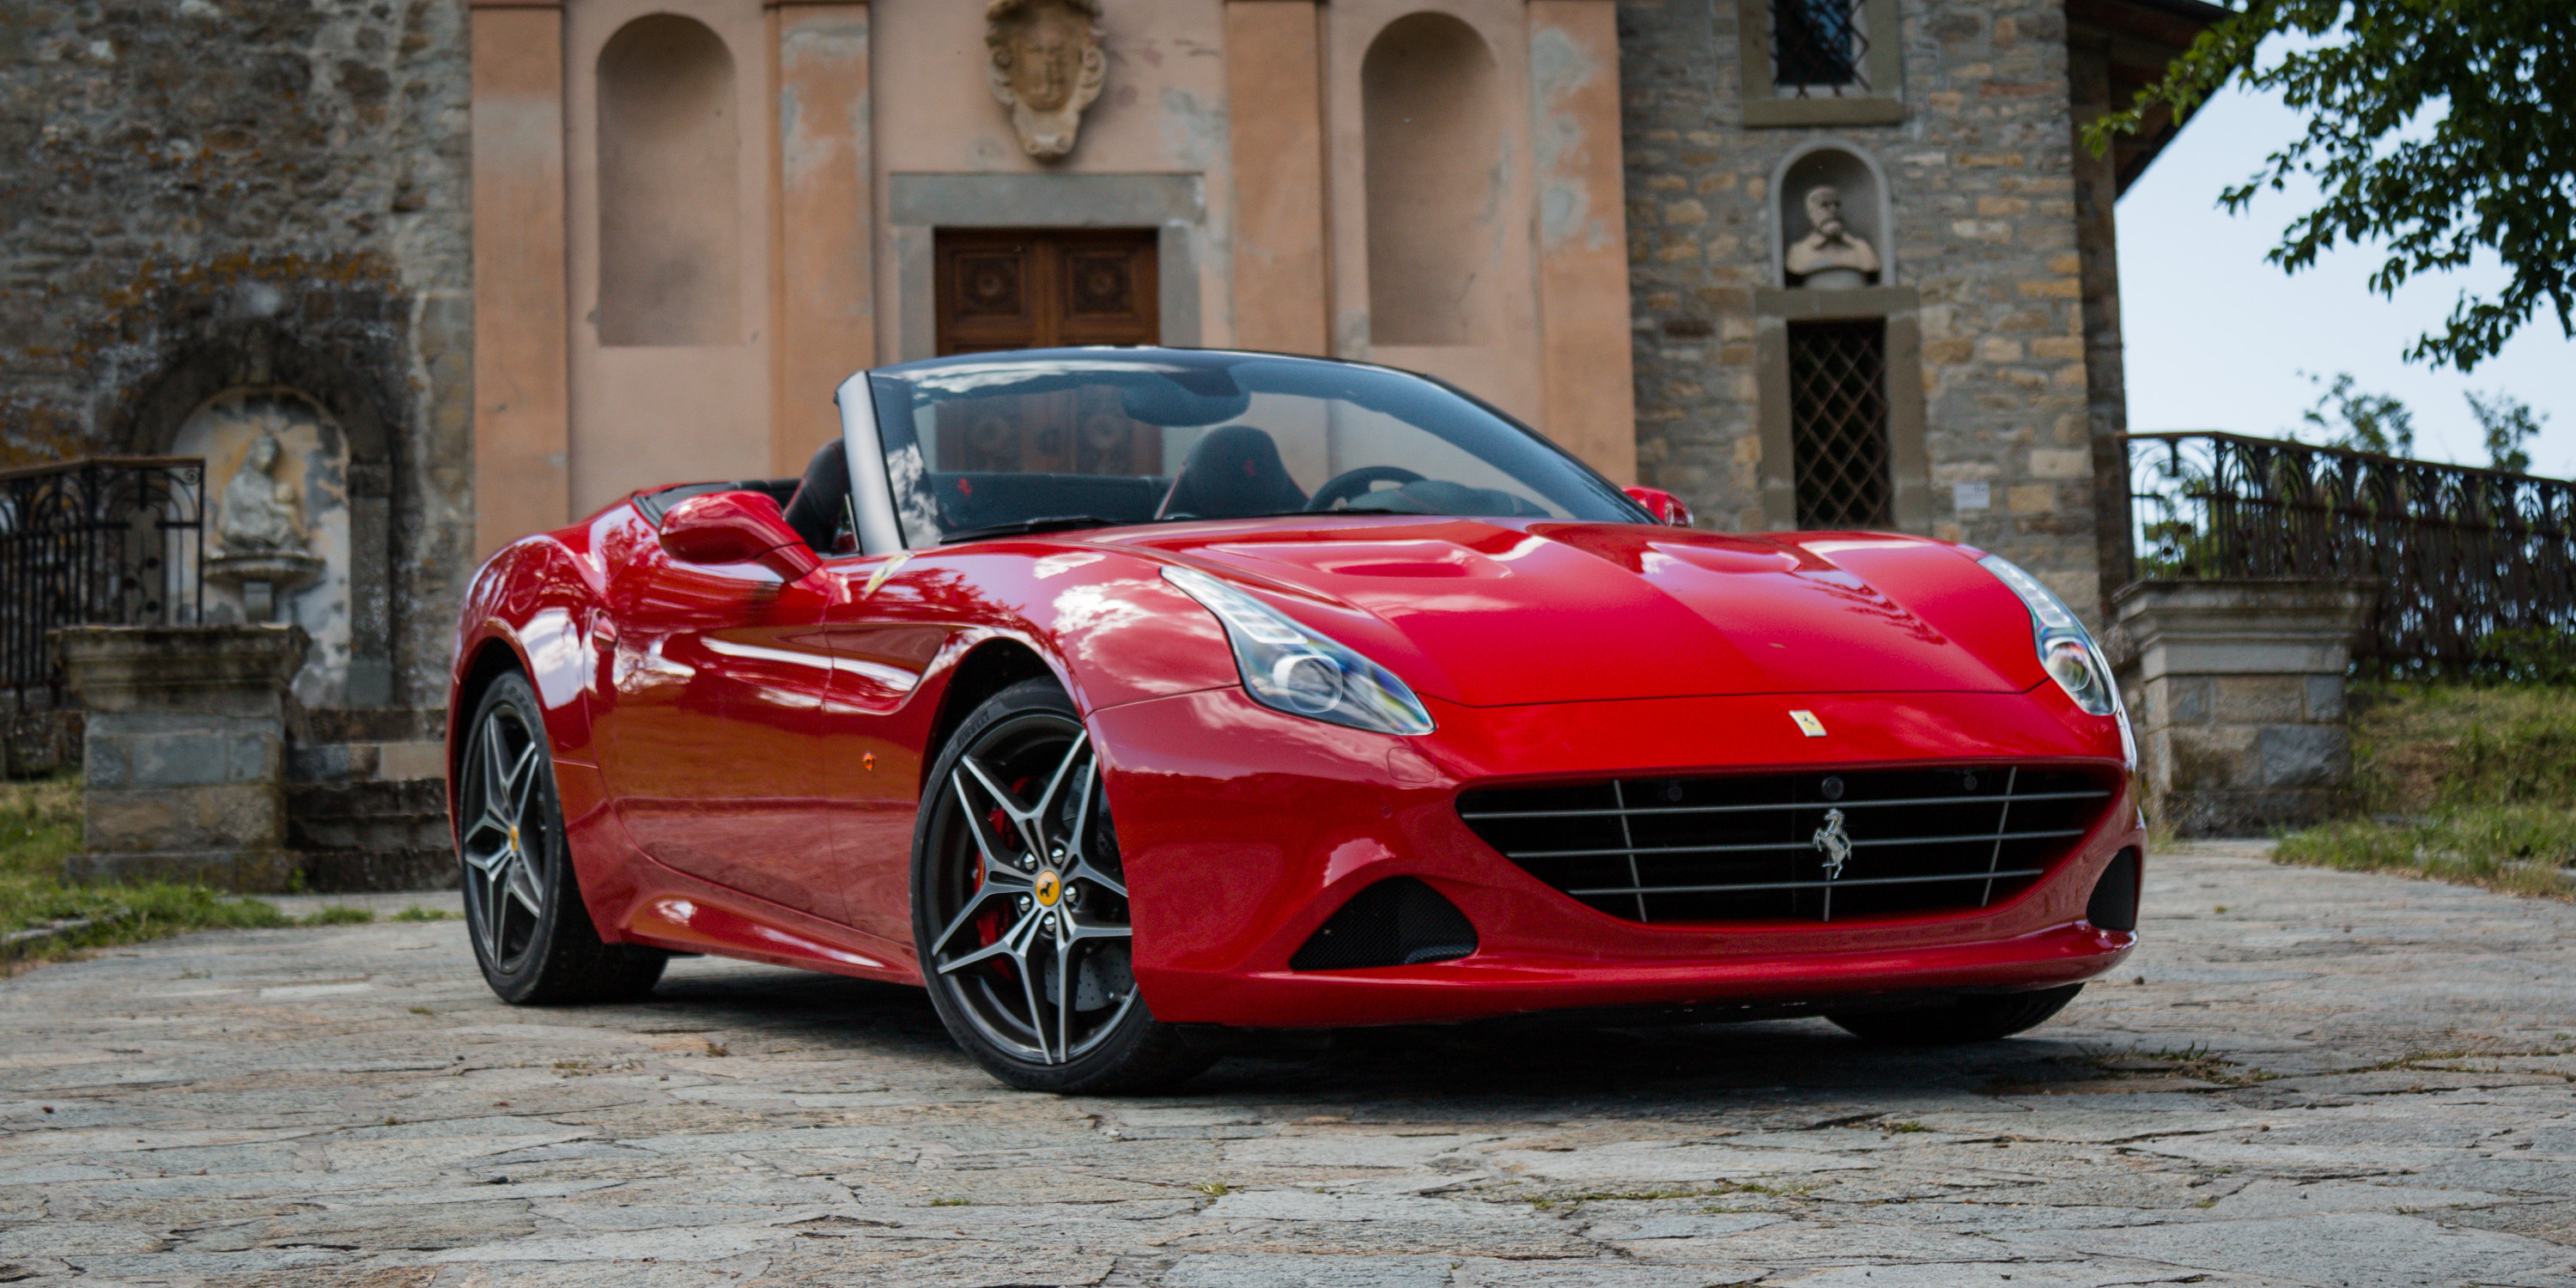 2016 Ferrari California T Handling Speciale Review Photos Caradvice